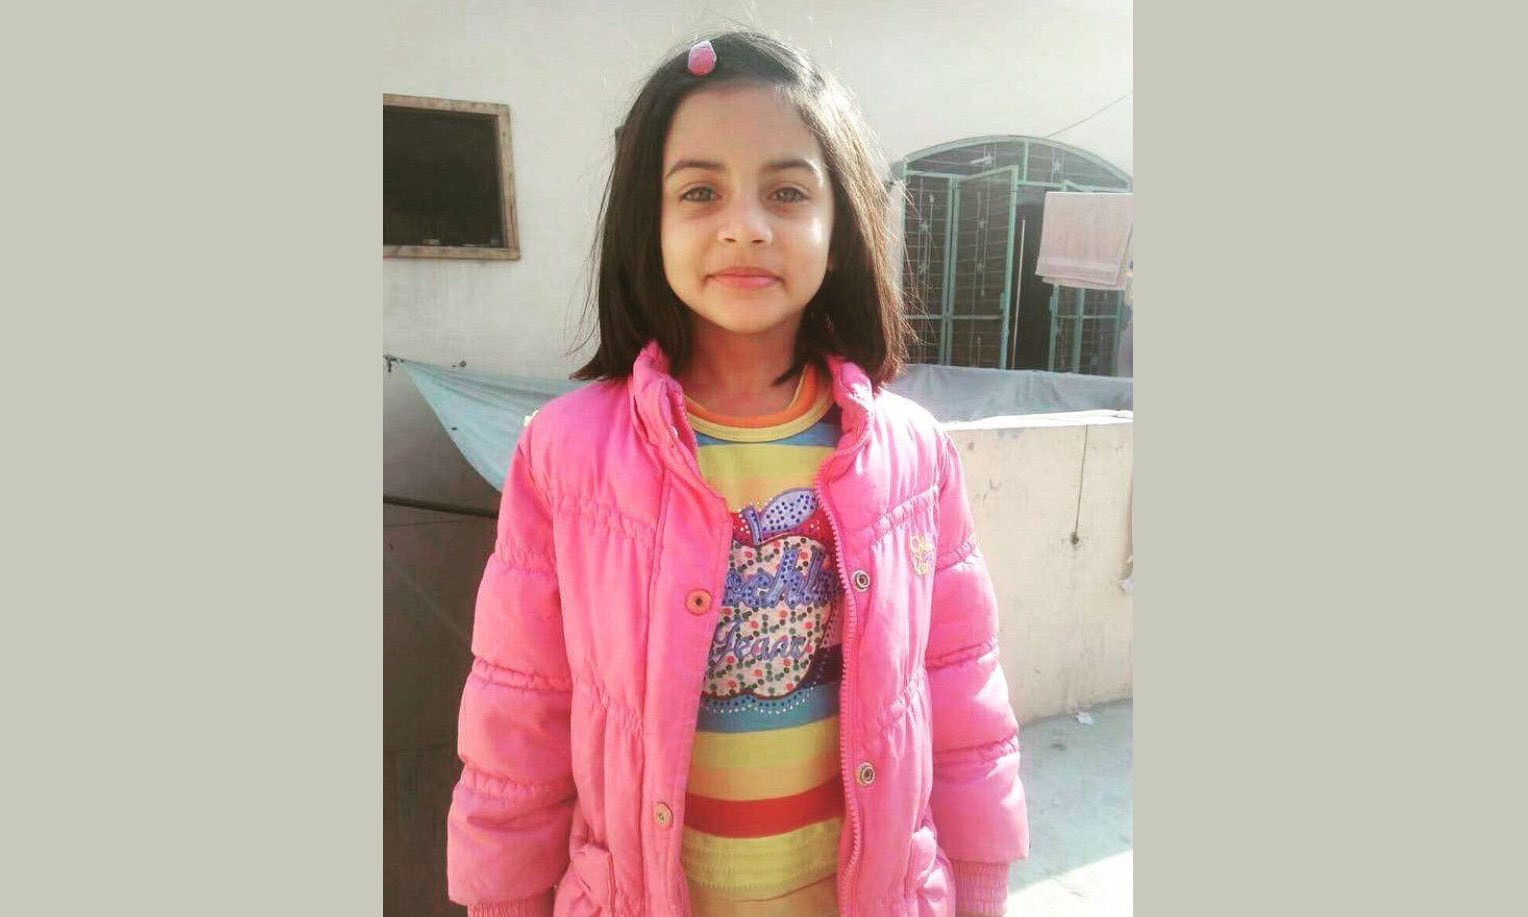 6-year-old Zainab's autopsy suggests child endured rape ...